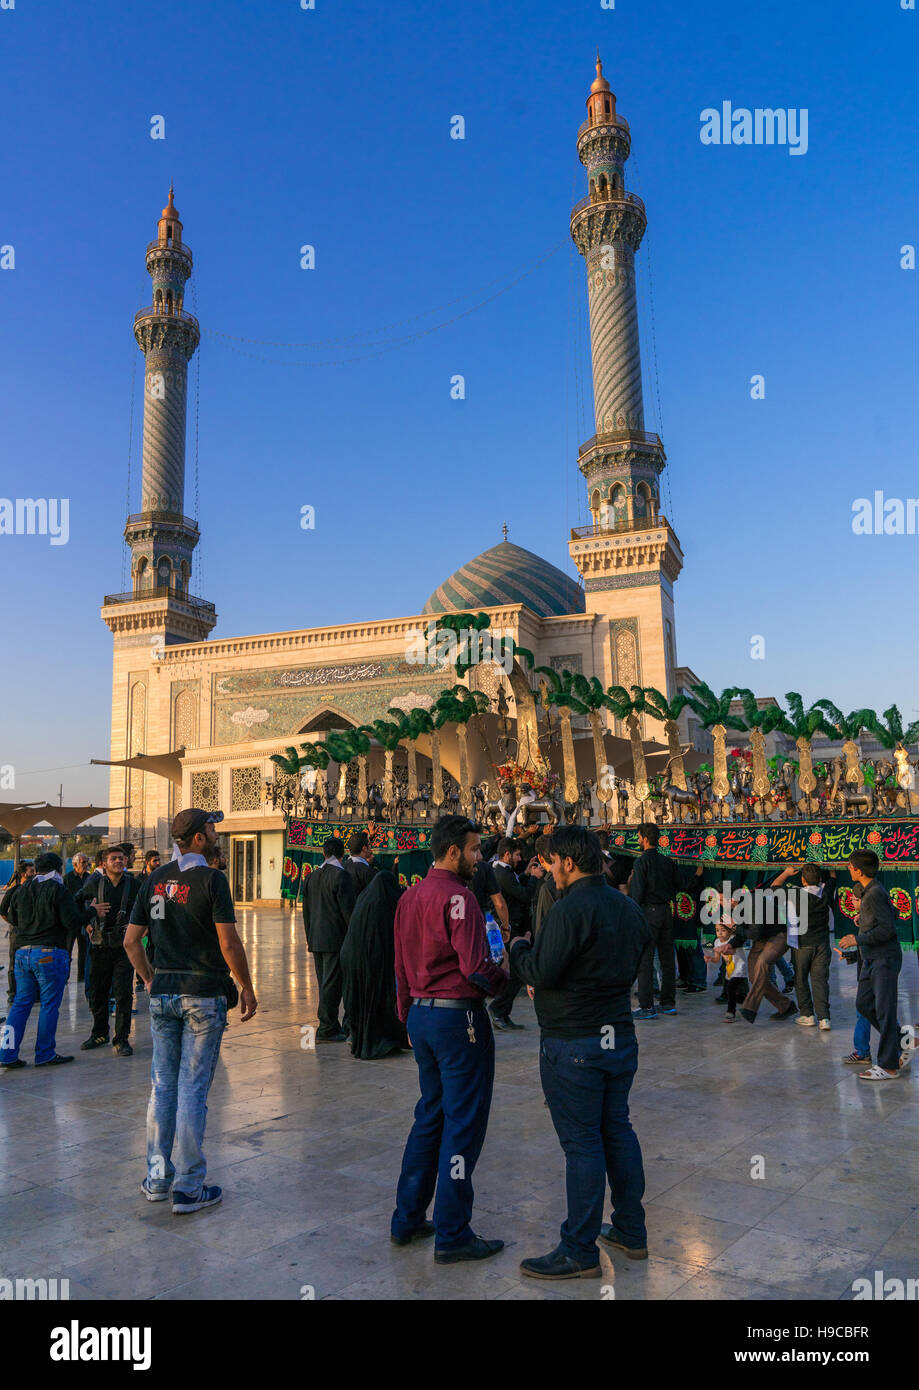 Alam procession during muharram celebrations in fatima al-masumeh shrine, Central county, Qom, Iran - Stock Image